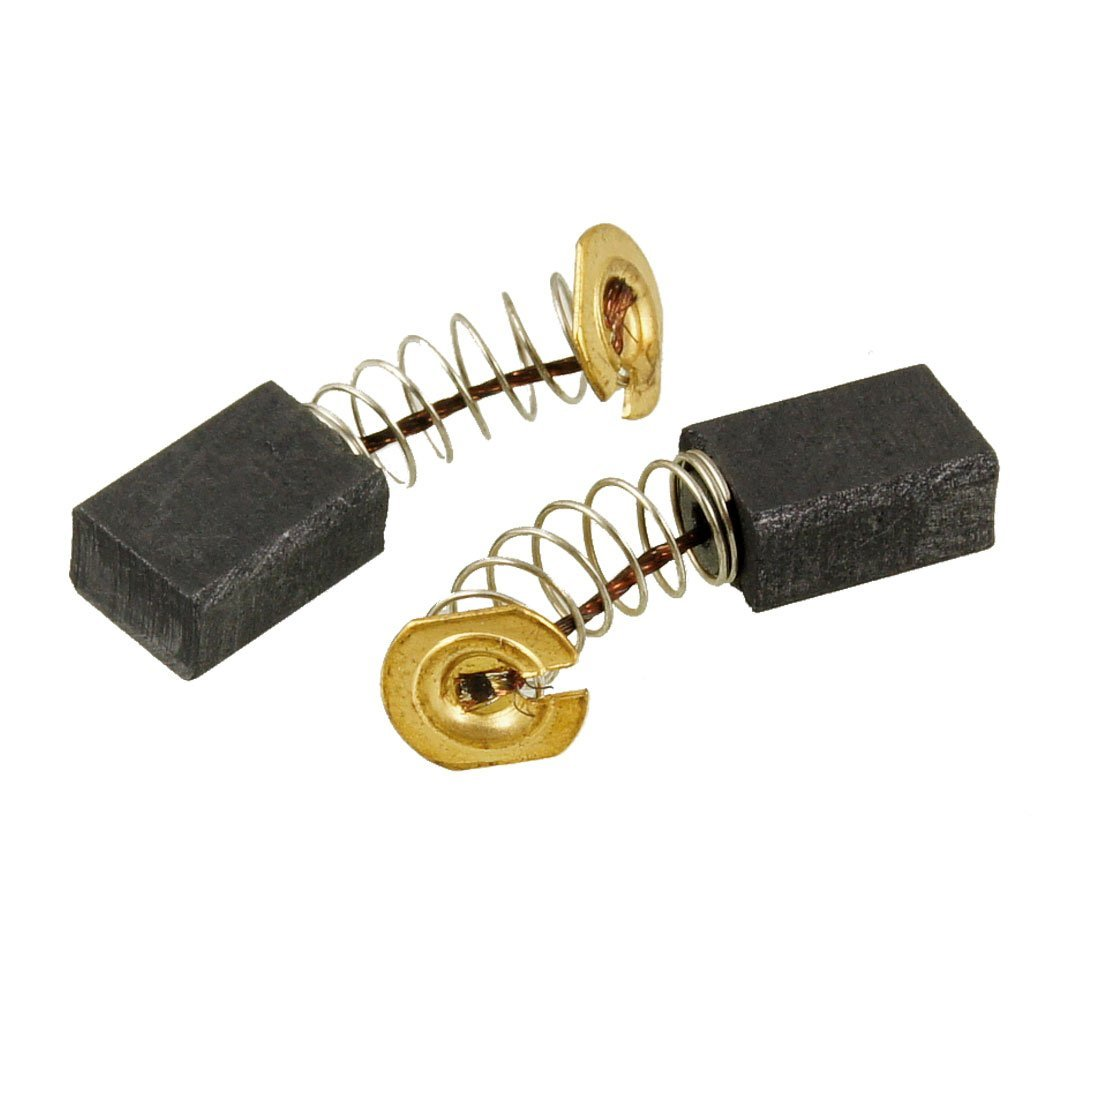 Uxcell a12092000ux0447 Electric Motor Carbon Brushes, 17/32 x 9/25 x 15/64